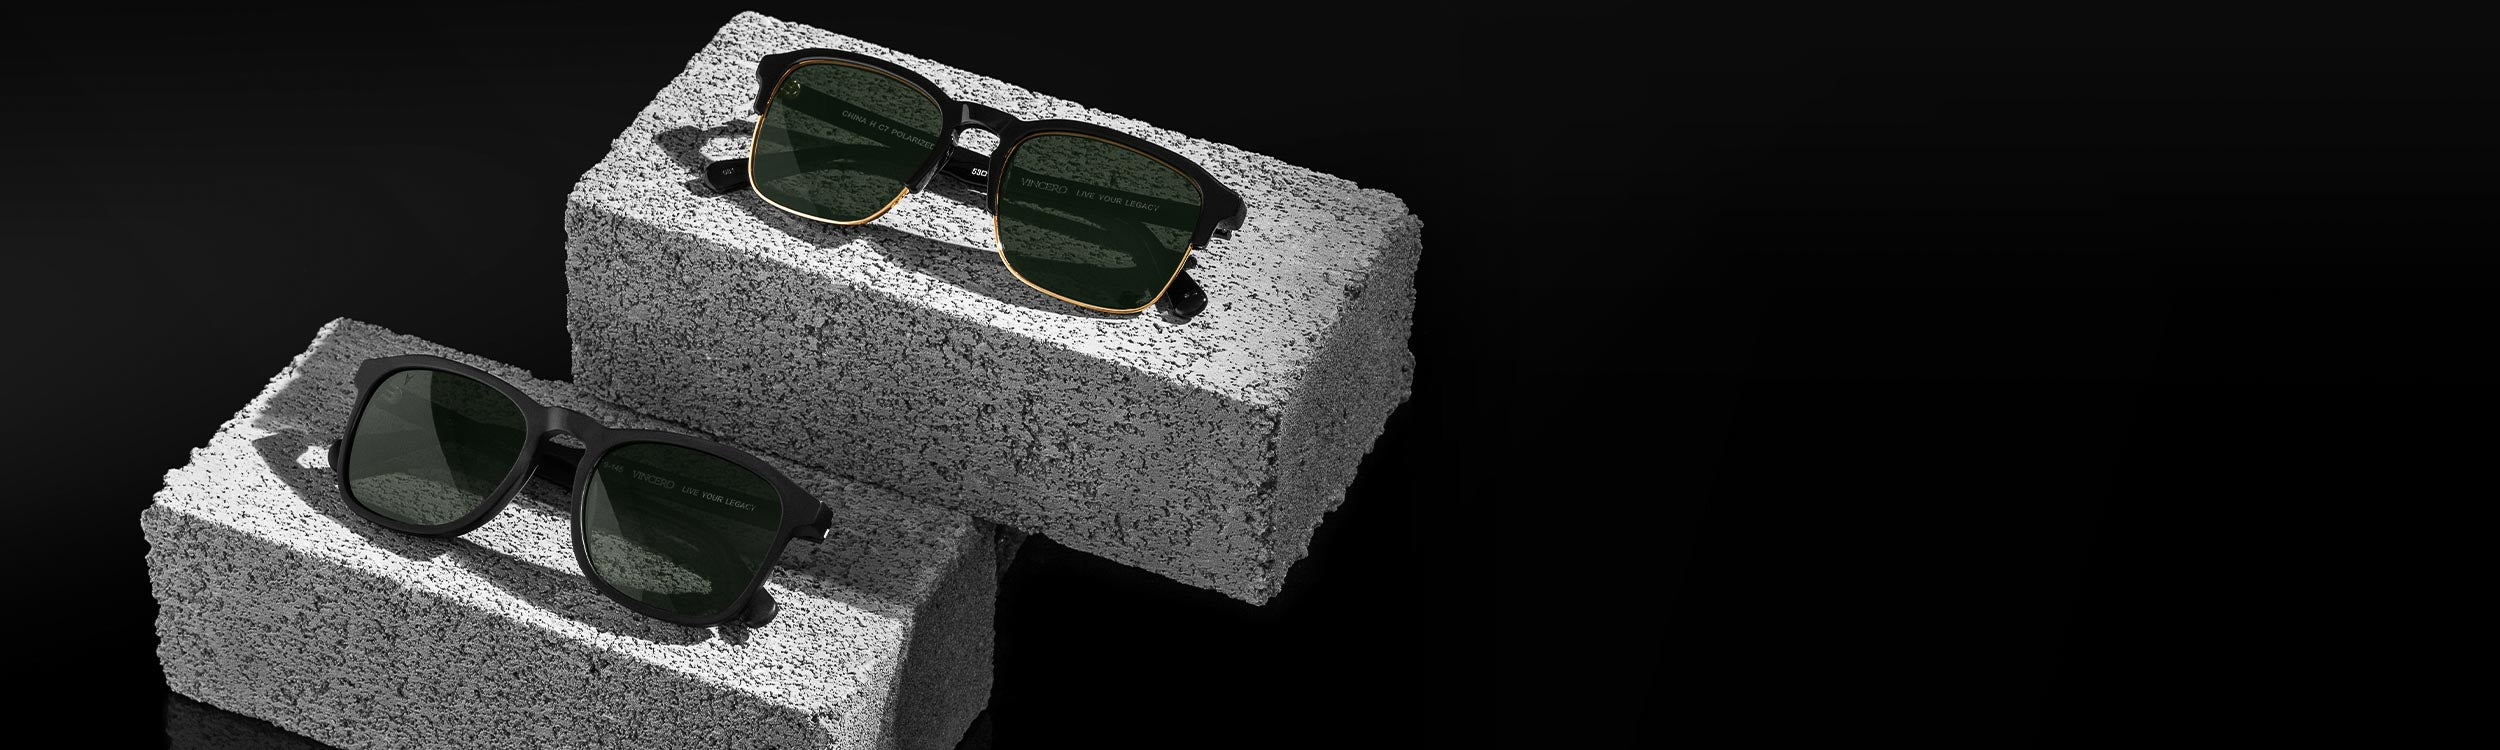 Two sunglasses laying on bricks with black background